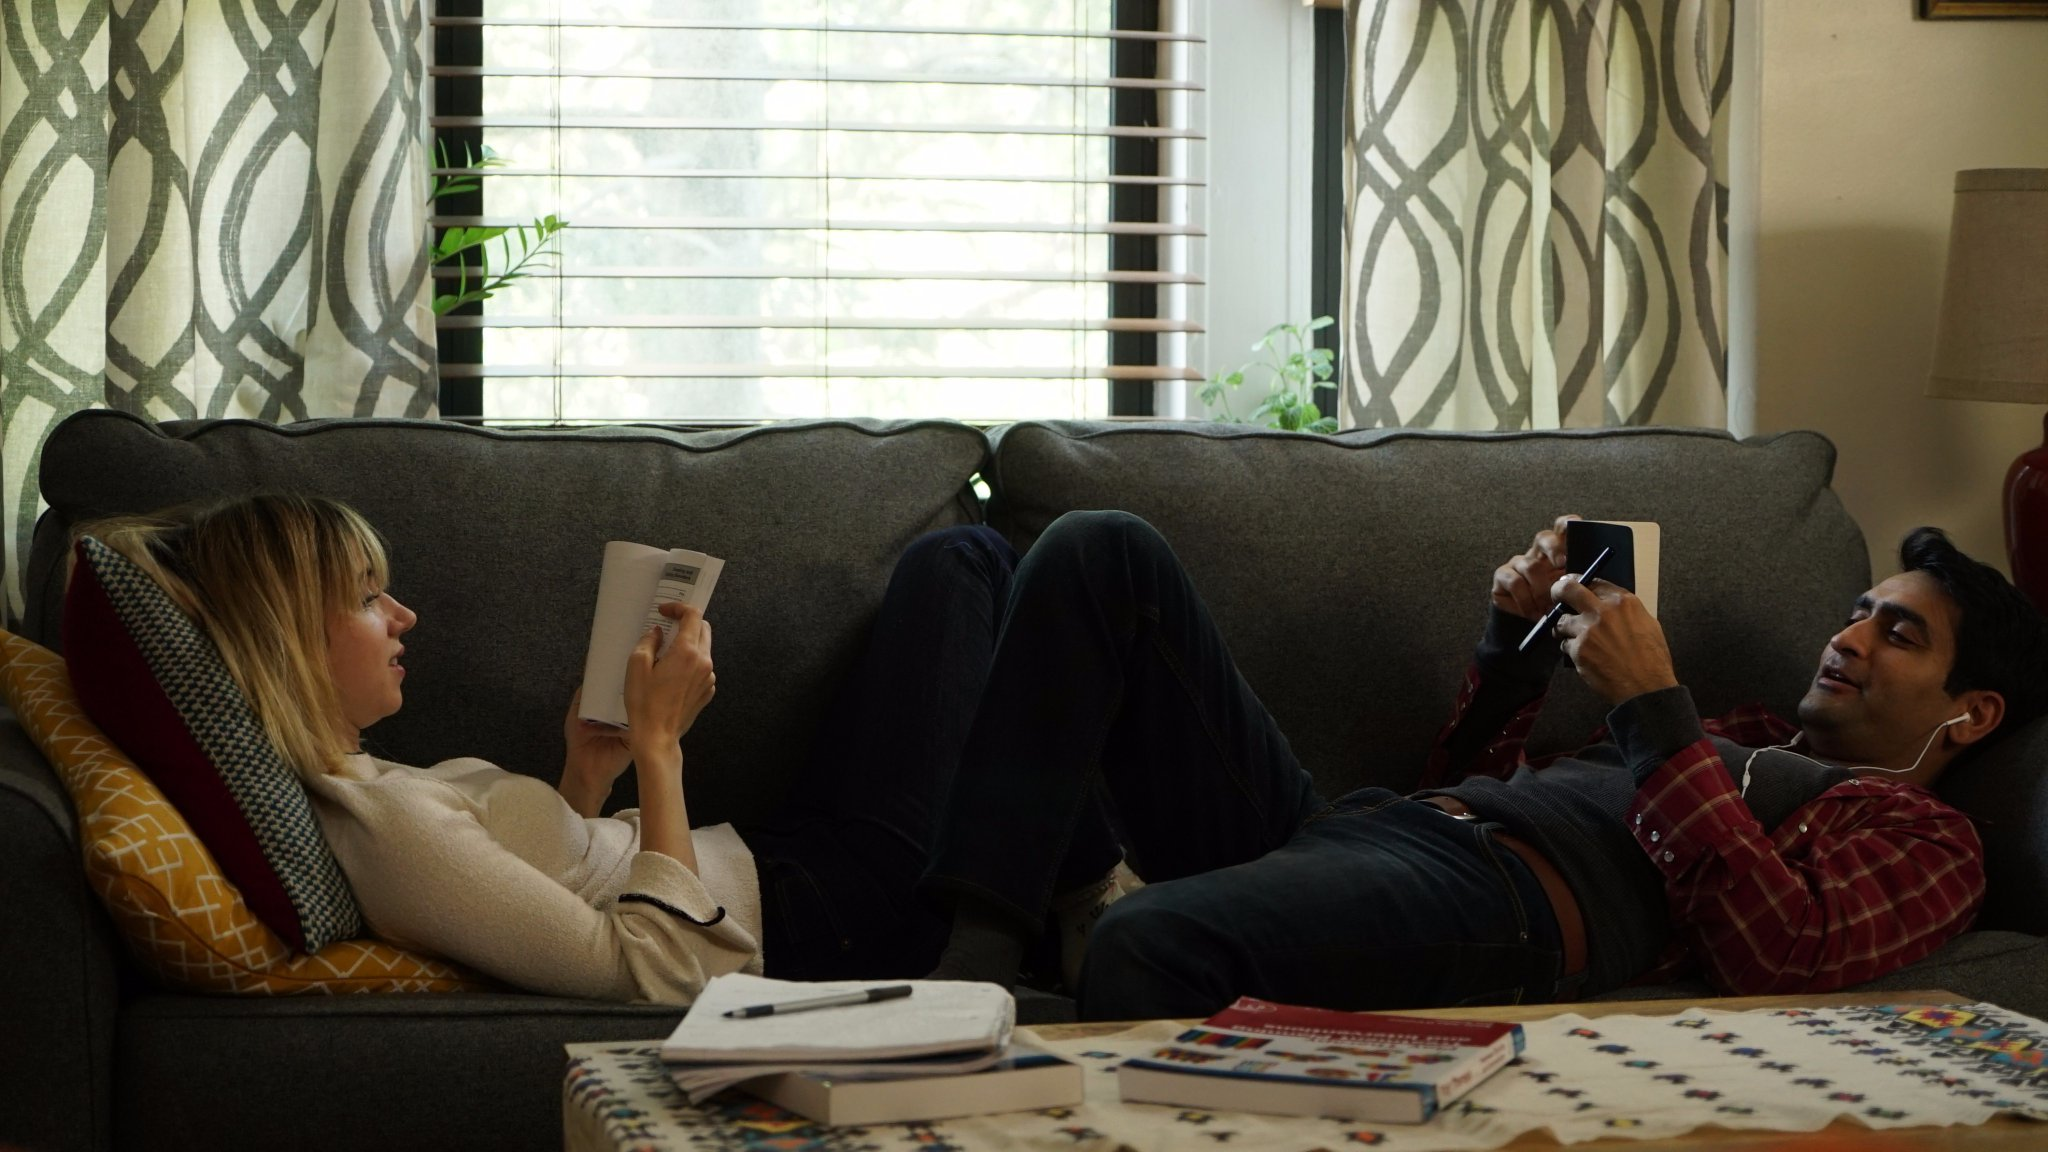 Kumail Nanjiani and Emily V. Gordon in The Big Sick